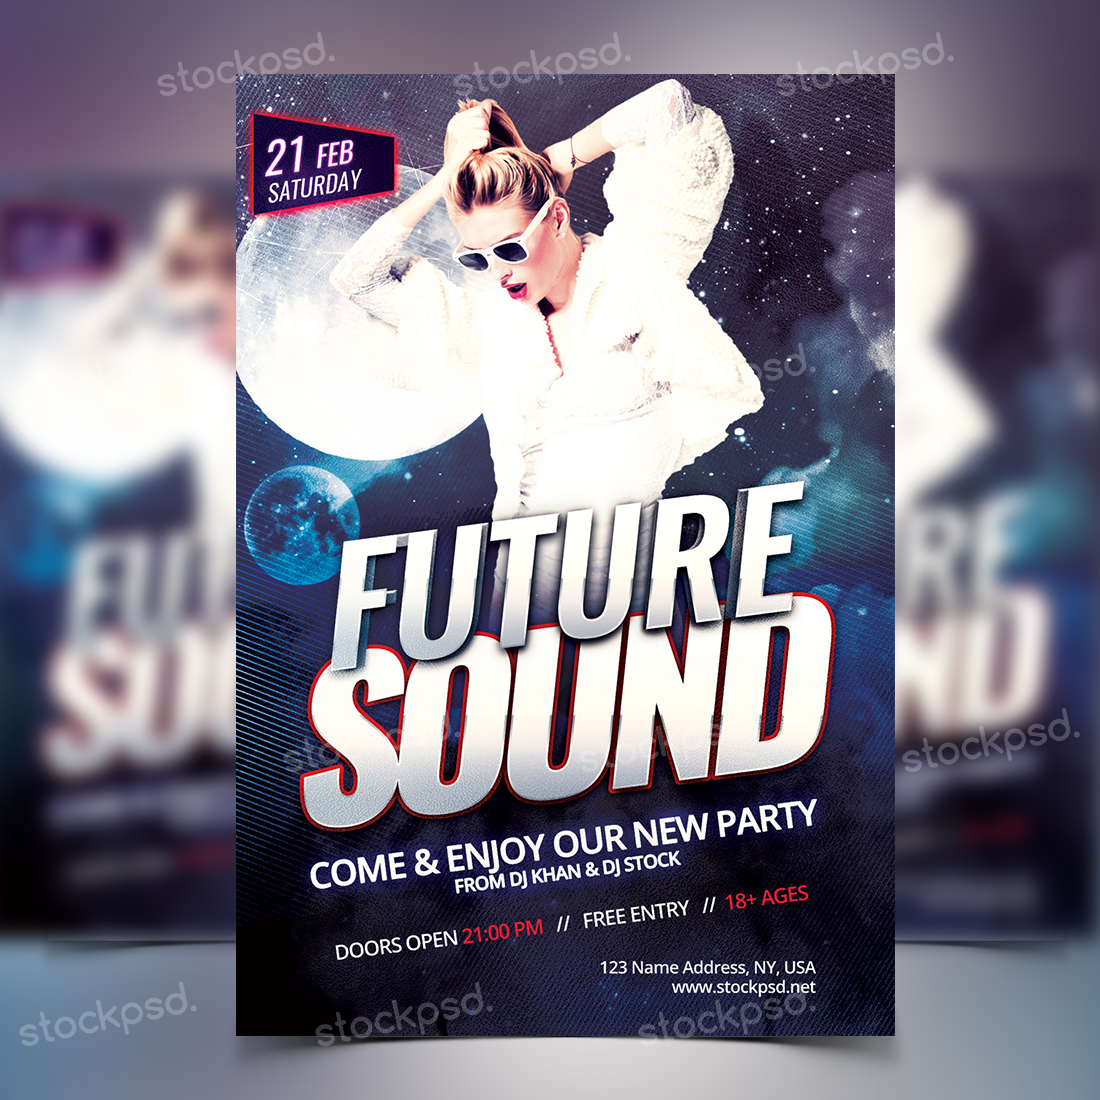 Stockpsd.net | Future Sound Party - FREE PSD Flyer Template ...